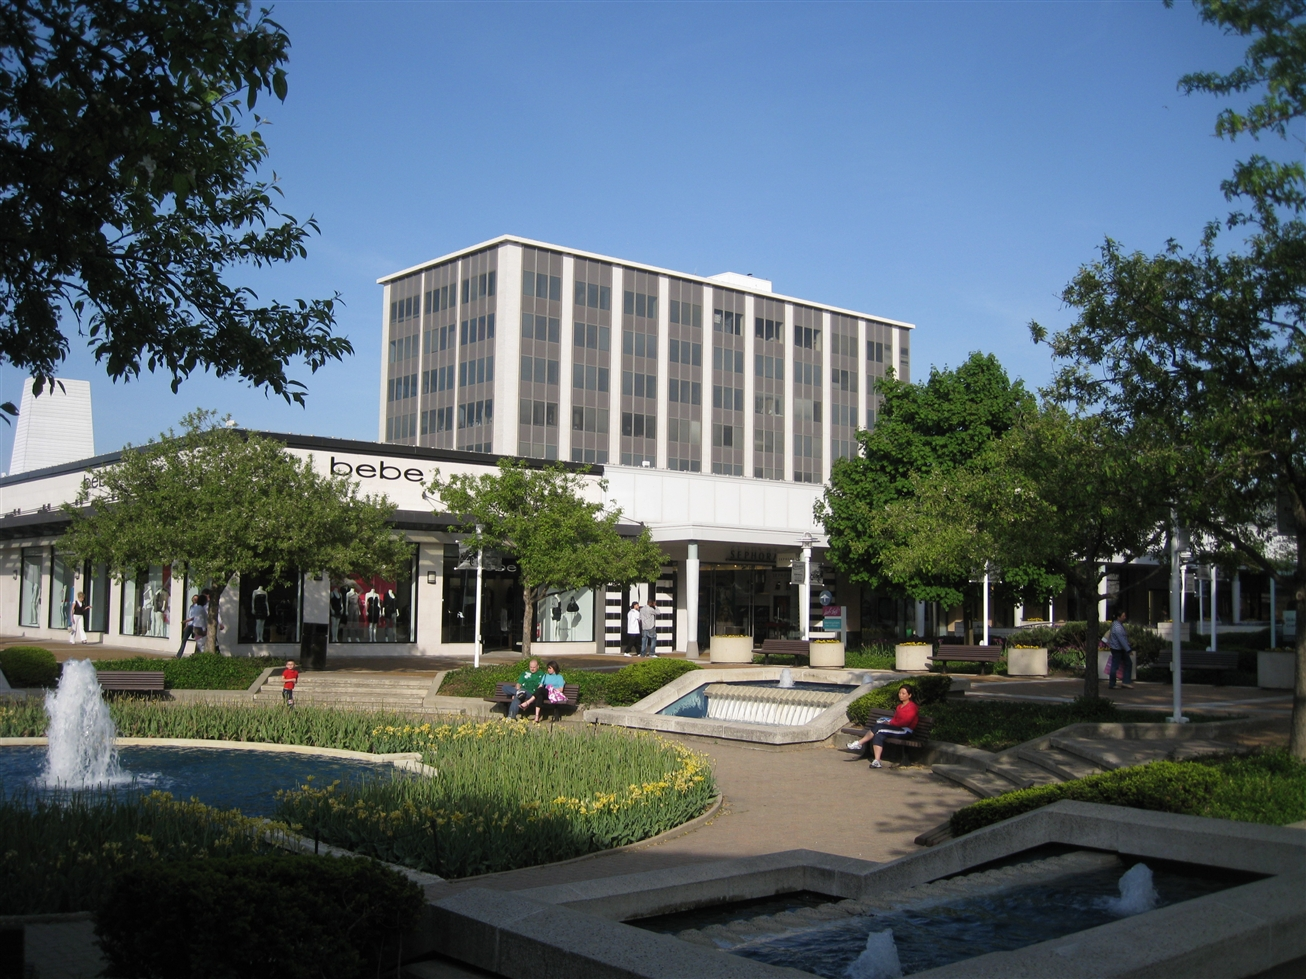 oakbrook-center-11